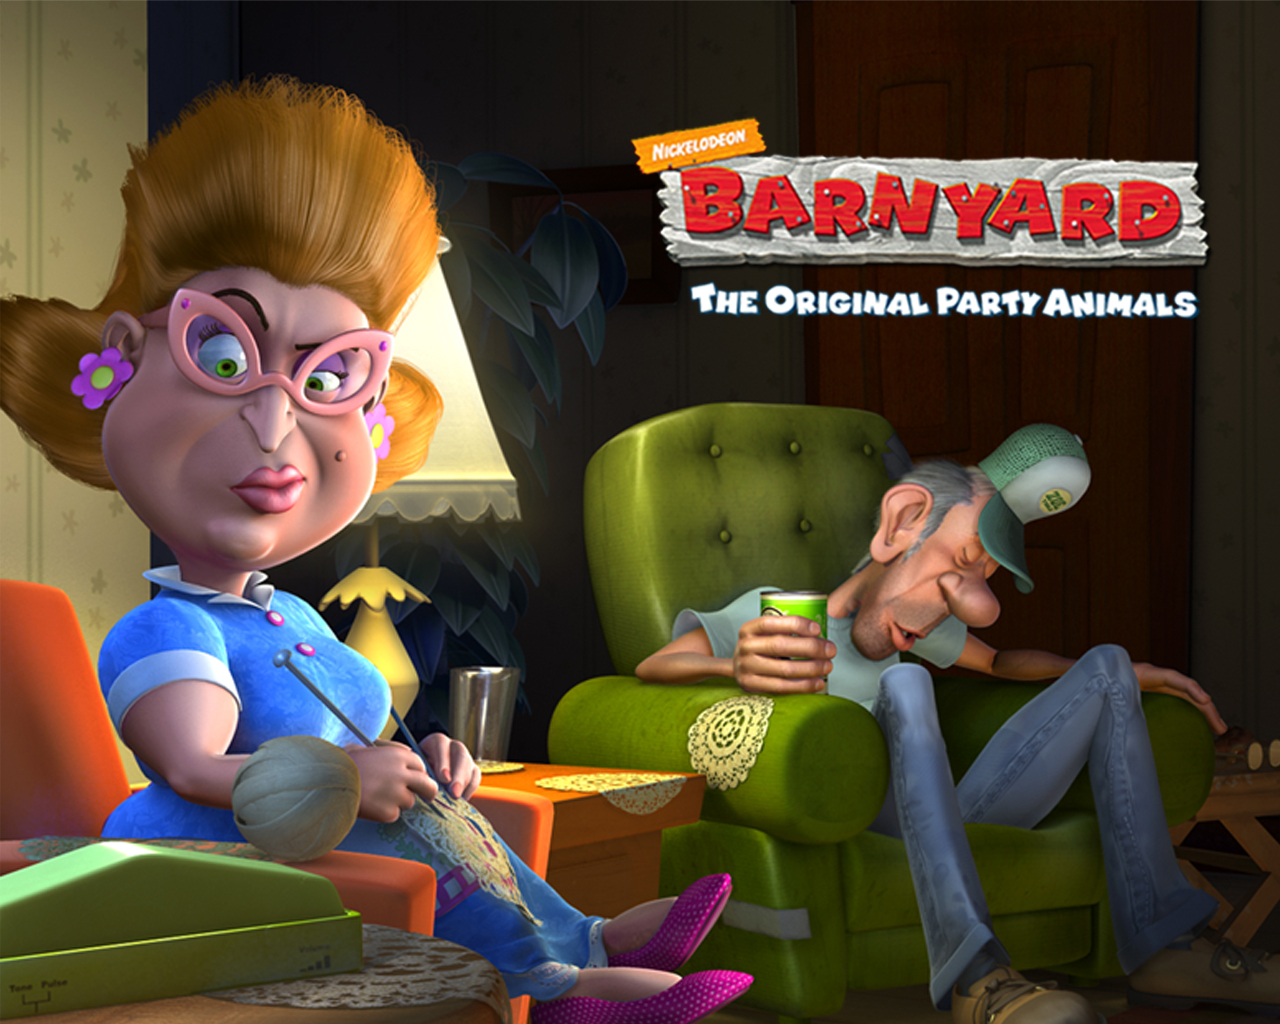 barnyard images reverse search